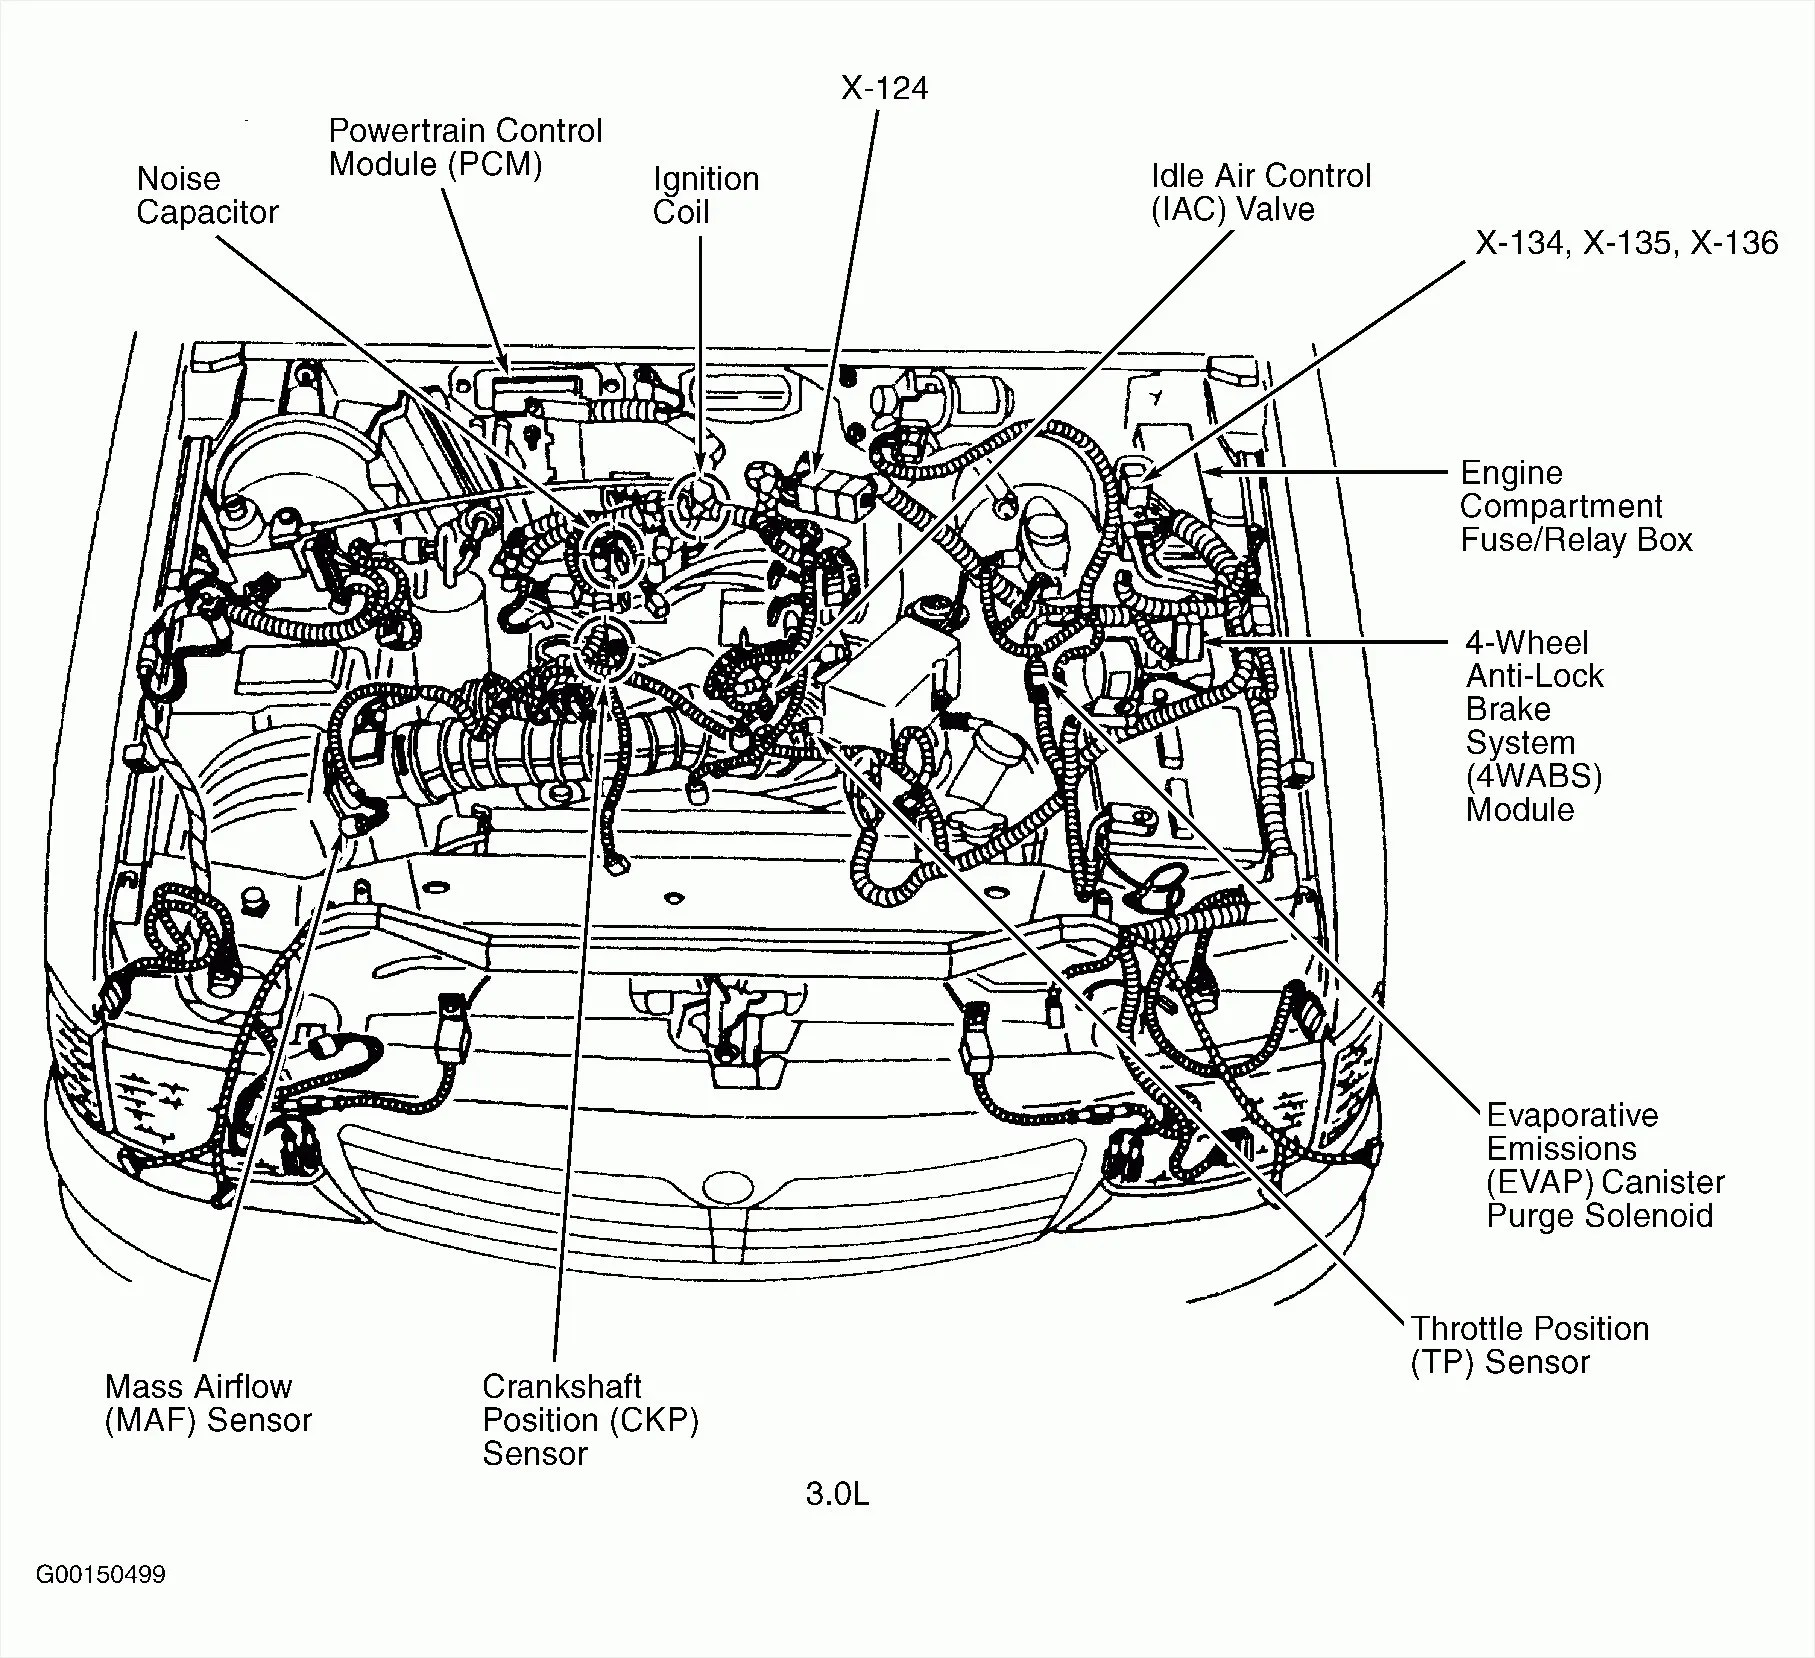 hight resolution of wiring diagram in addition 2002 ford 7 3 engine diagram on 91 ford f 1989 7 3 fuel system diagram